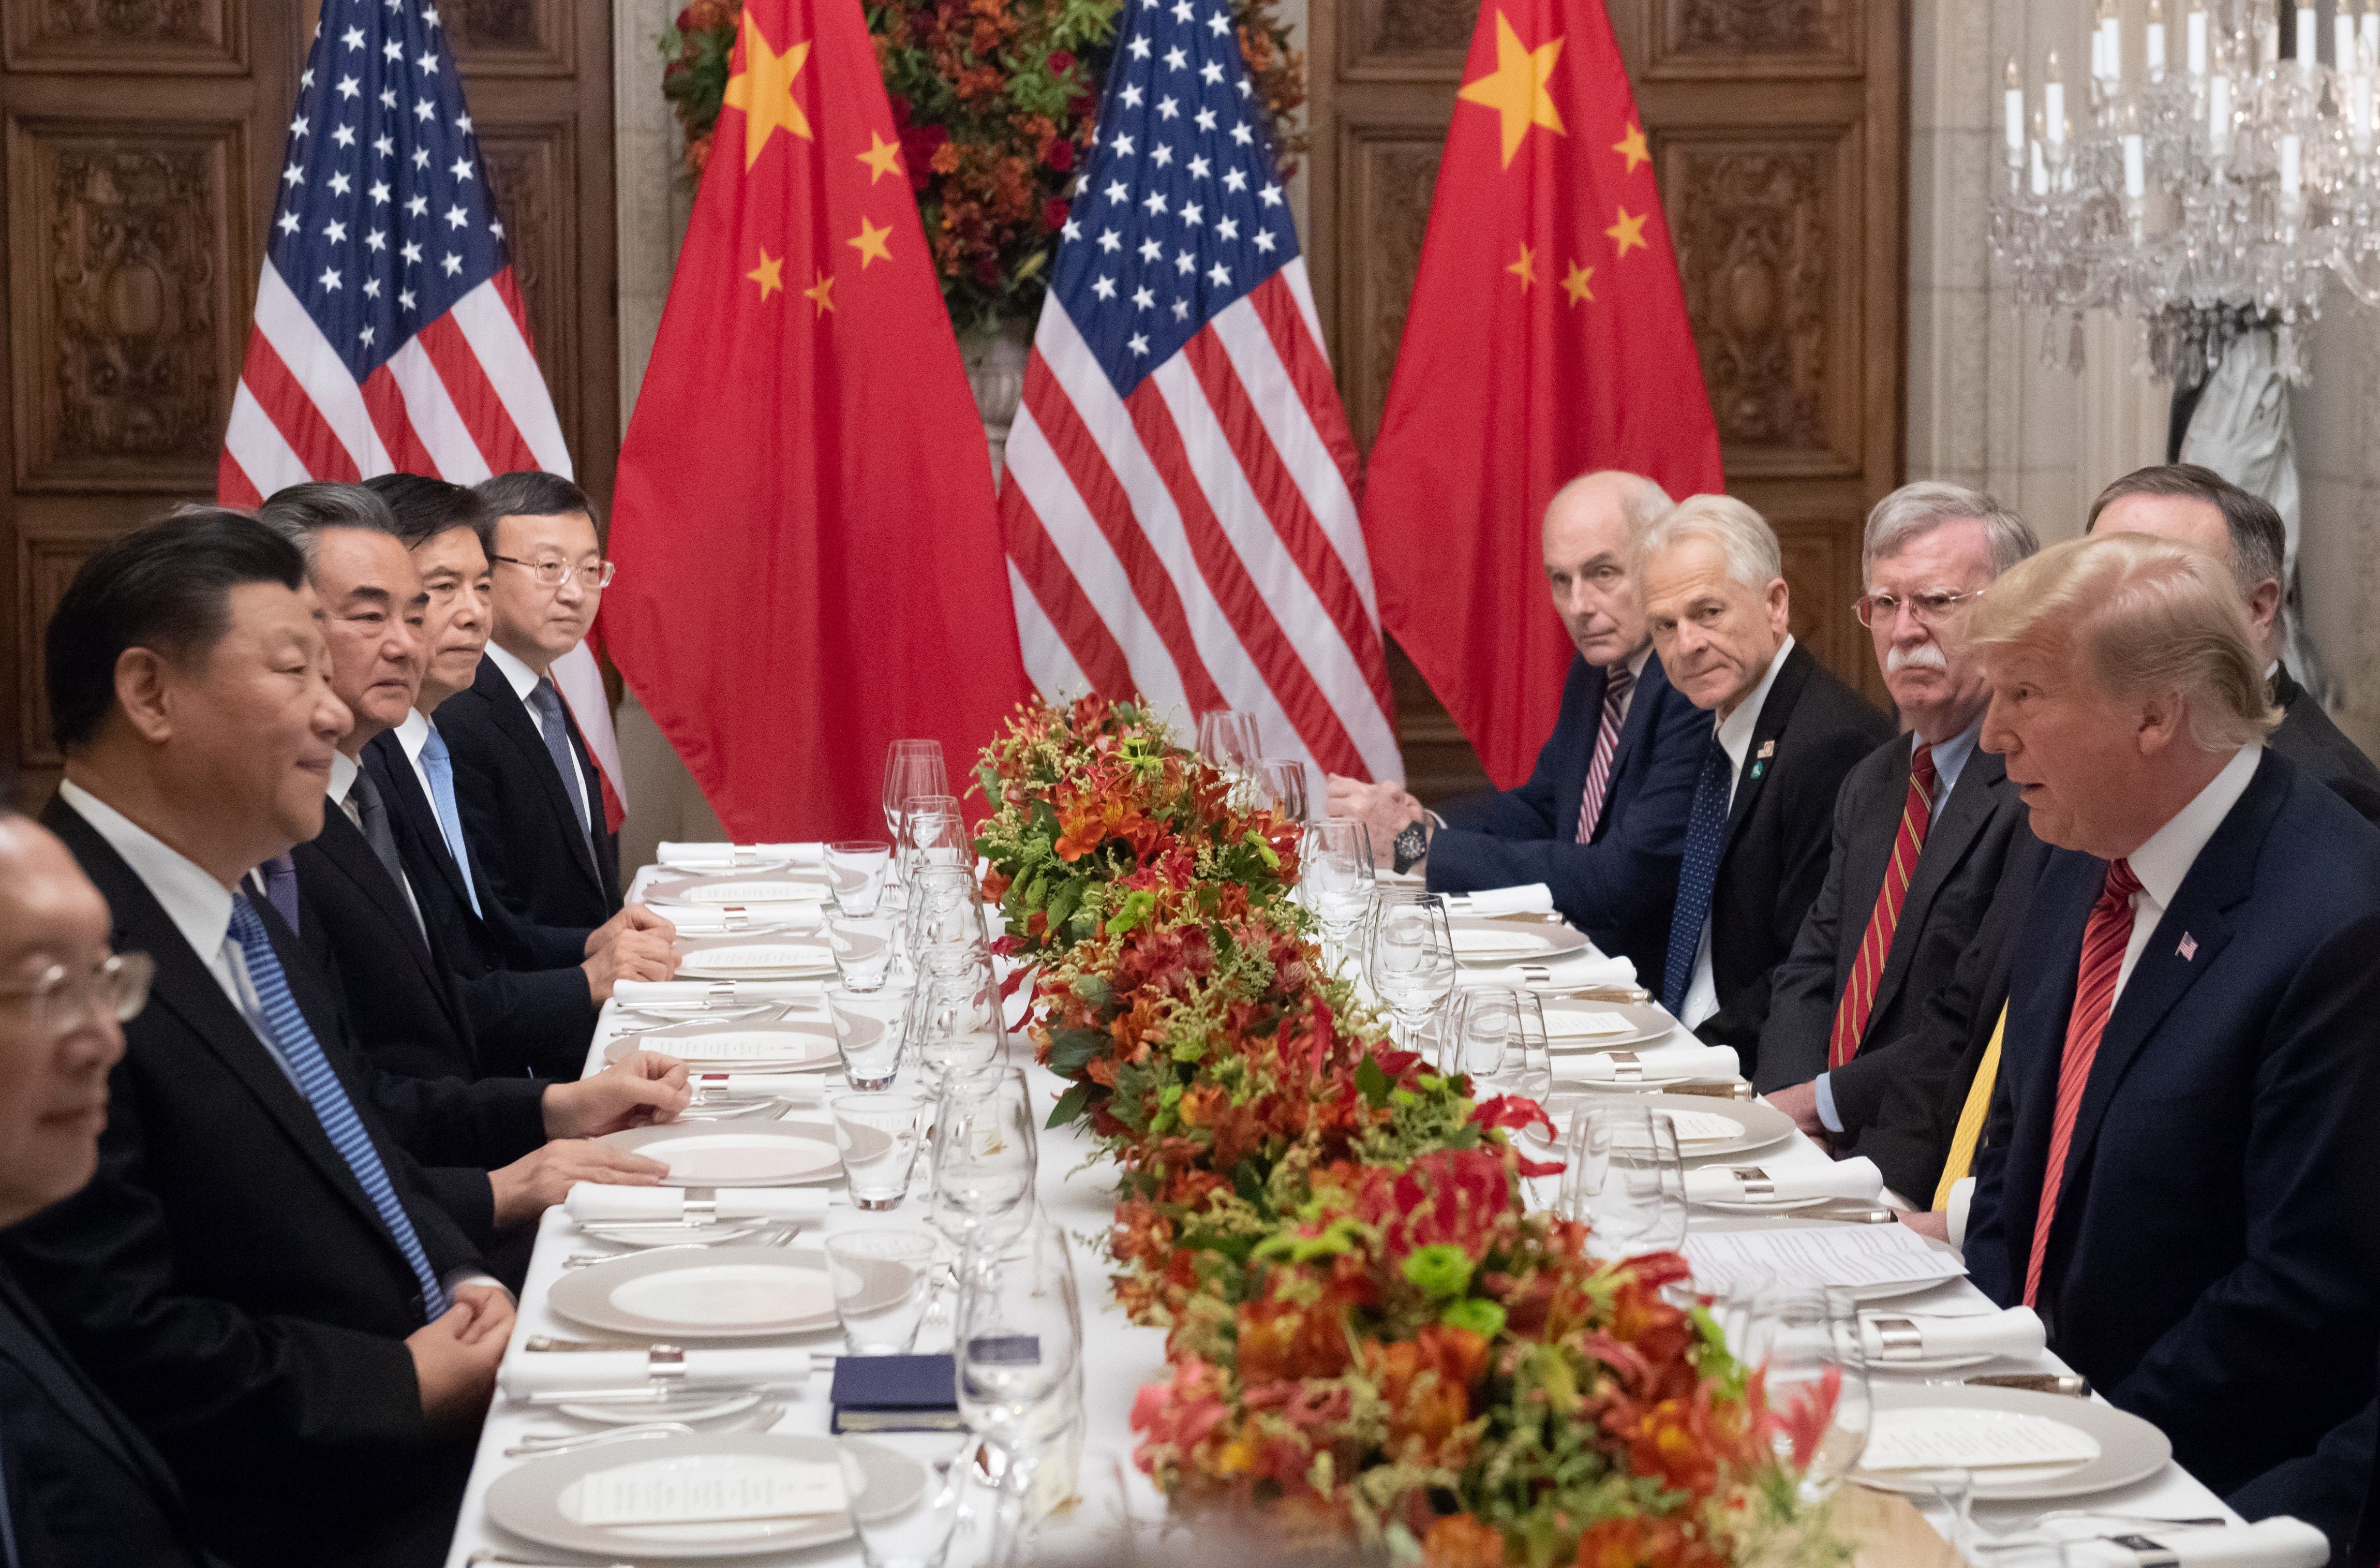 Donald Trump (R) and China's President Xi Jinping (L) along with members of their delegations, hold a dinner meeting at the end of the G20 Leaders' Summit in Buenos Aires, on December 01, 2018. - US President Donald Trump and his Chinese counterpart Xi Jinping had the future of their trade dispute -- and broader rivalry between the world's two top economies. (SAUL LOEB/AFP/Getty Images)